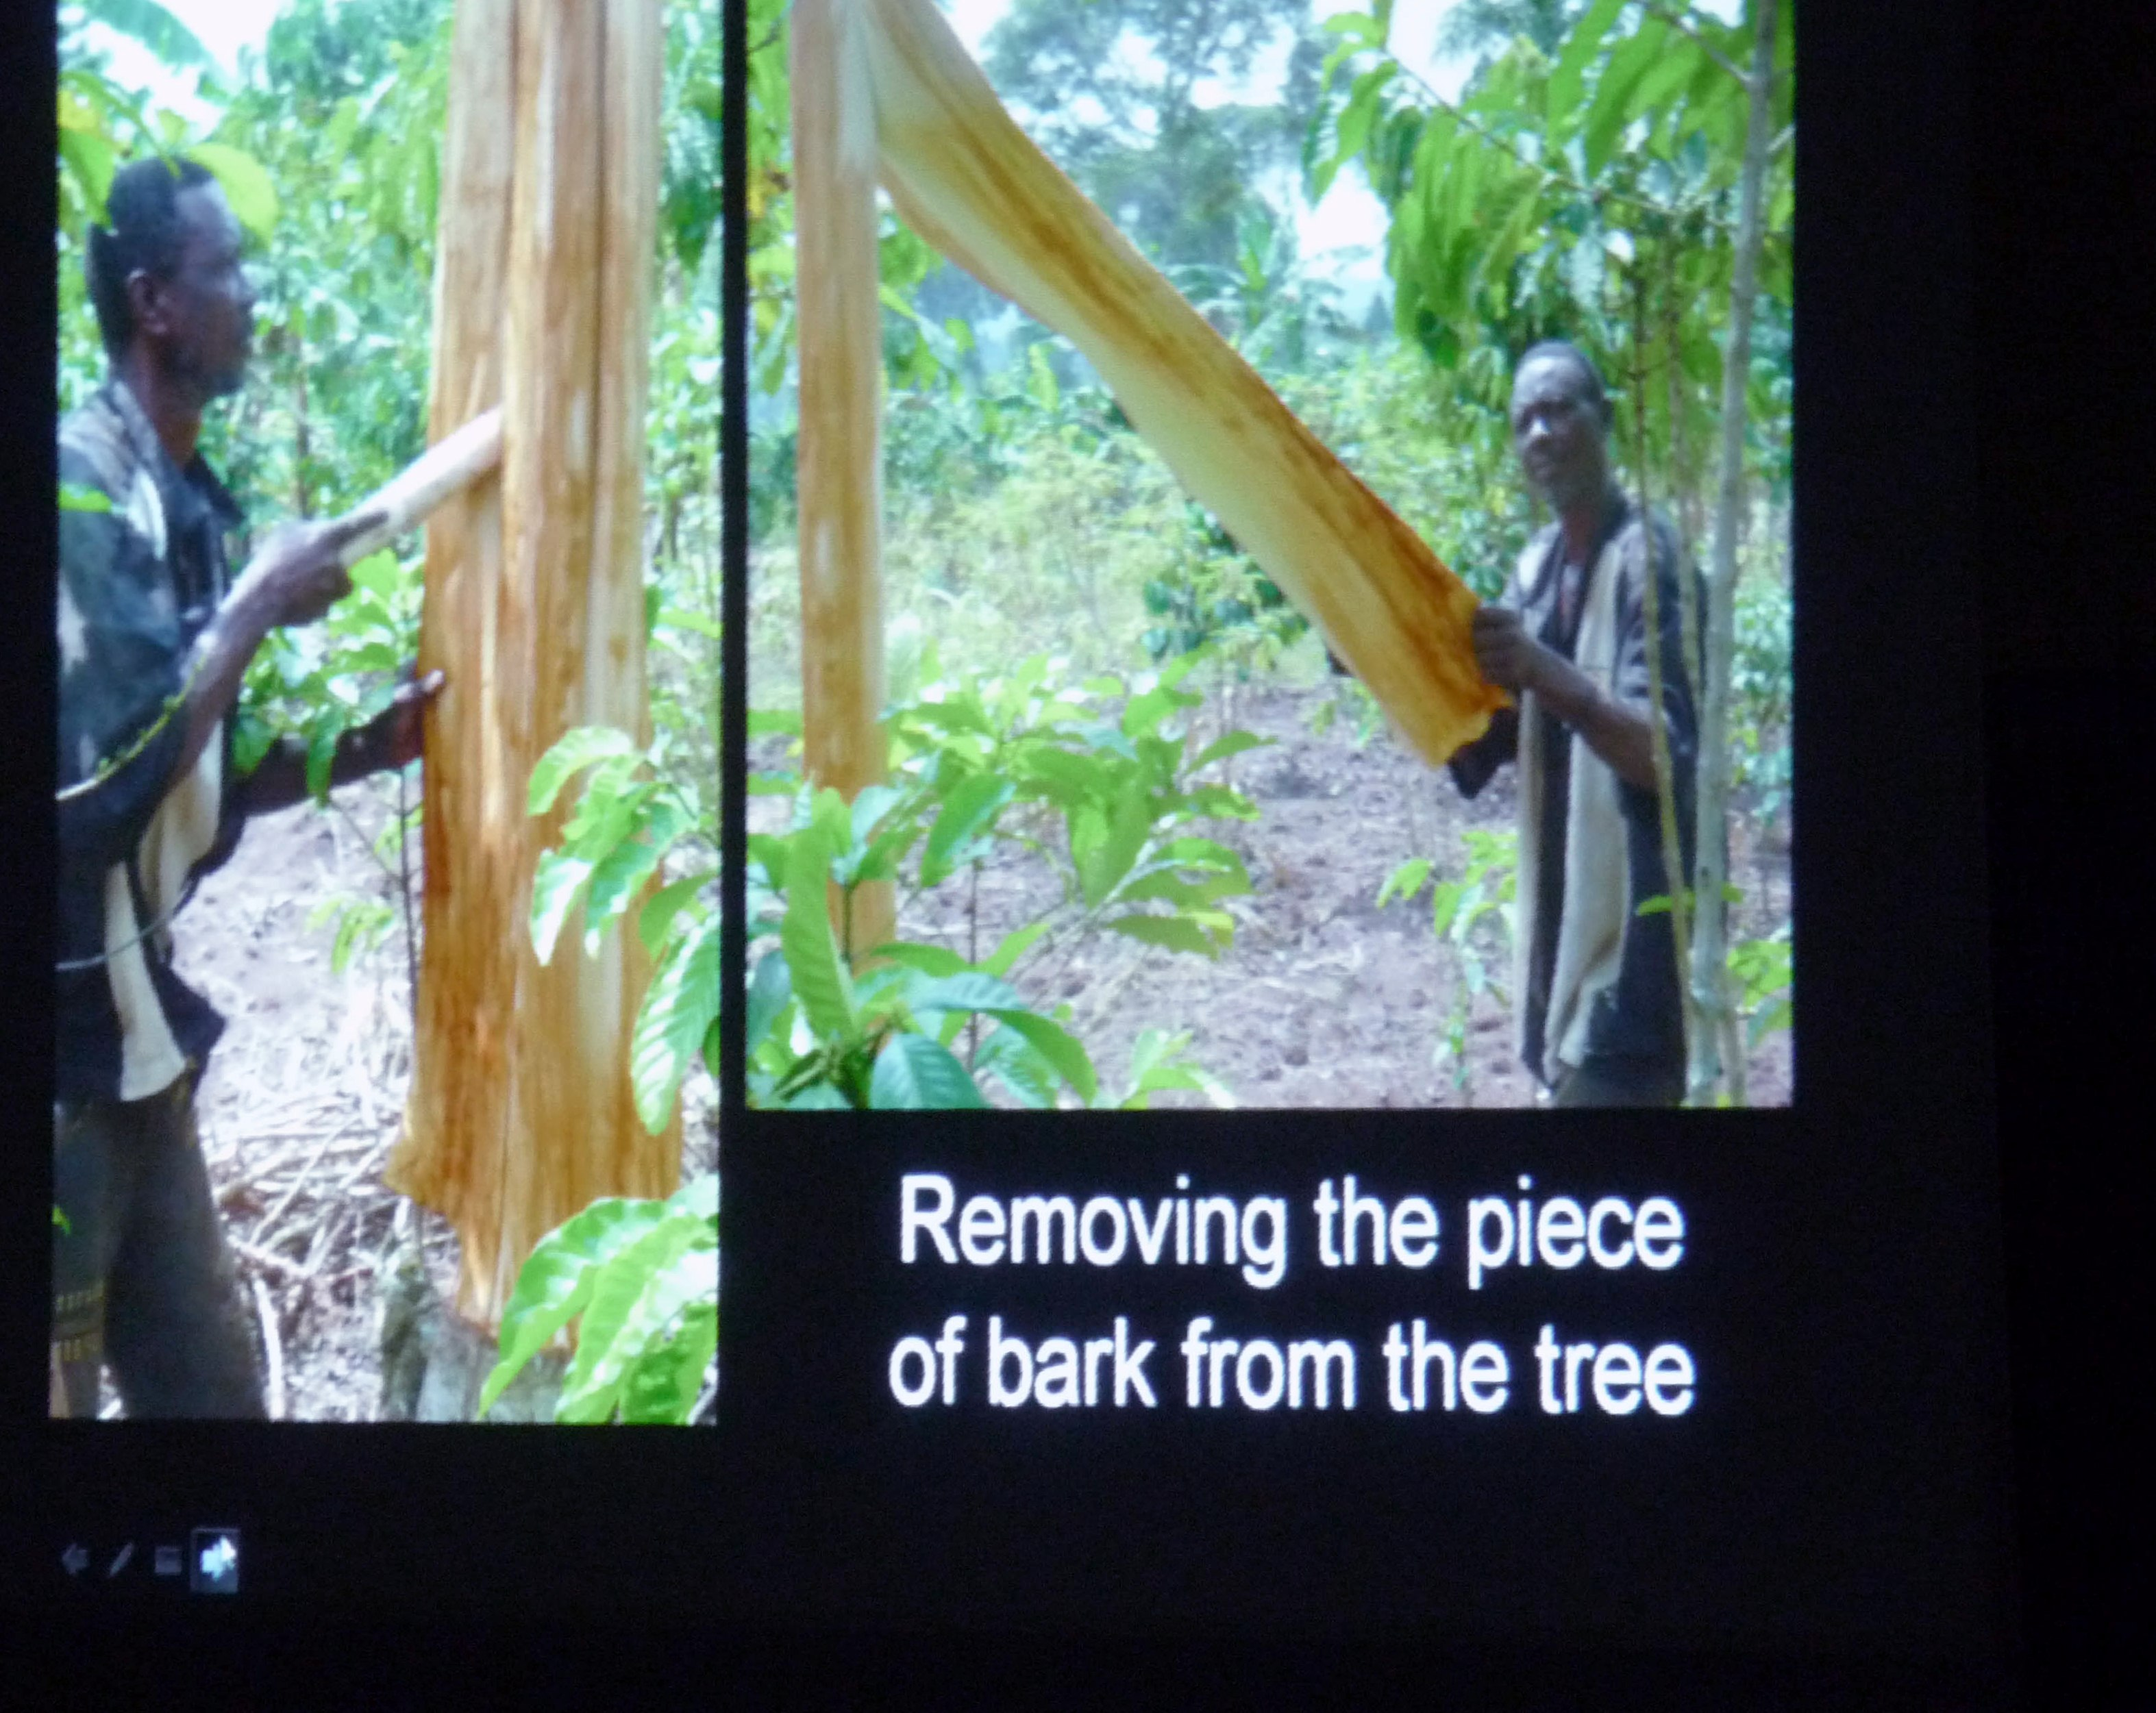 slide by Bobby Britnall showing bark being removed from a matuba tree